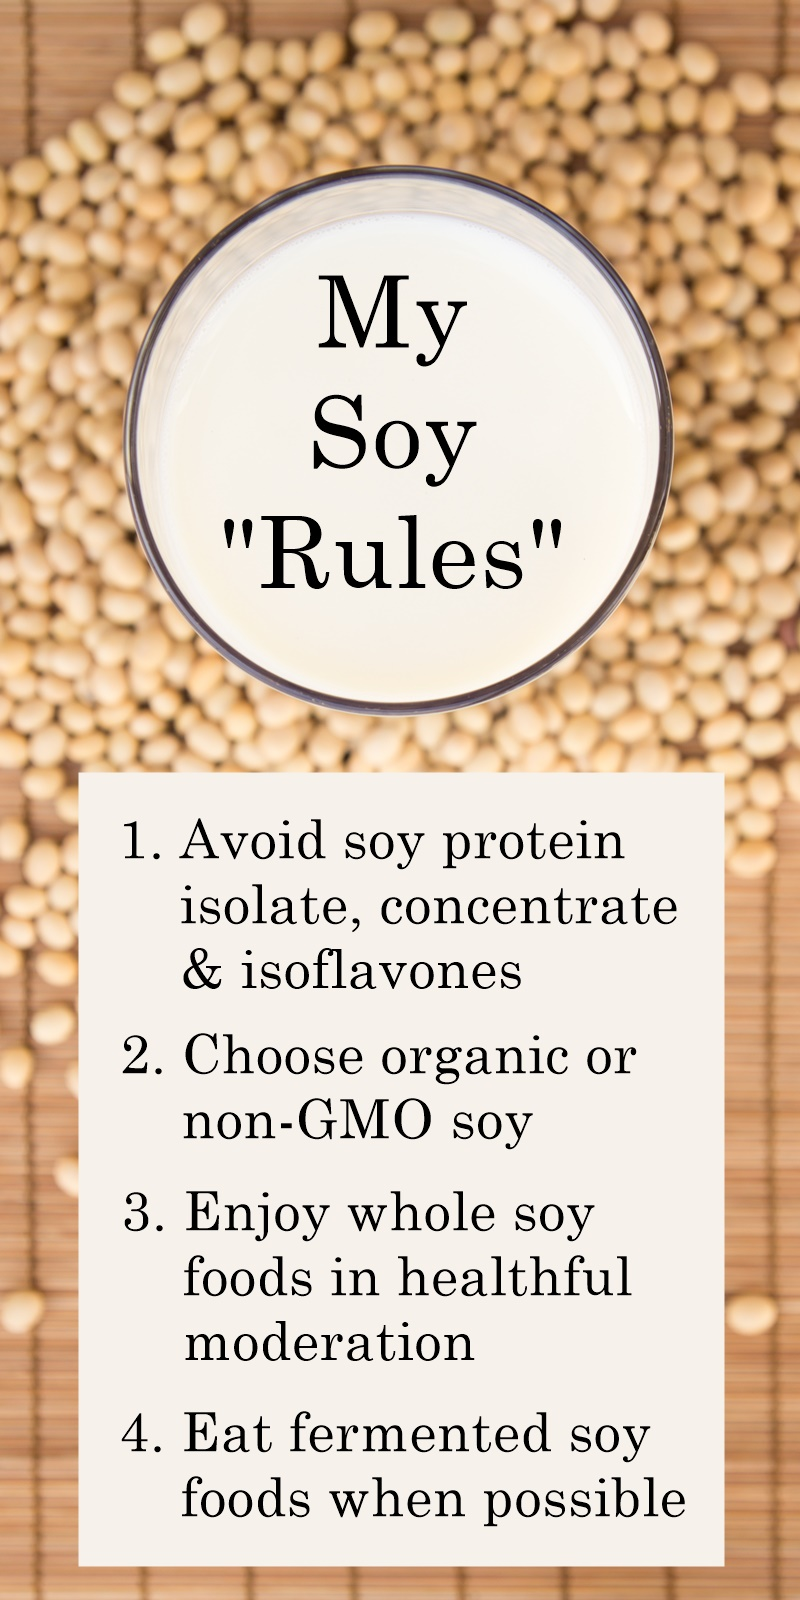 "My personal soy ""rules"" for enjoying soy healthfully (based on personal research for my body, should not be construed as dietary advice)"